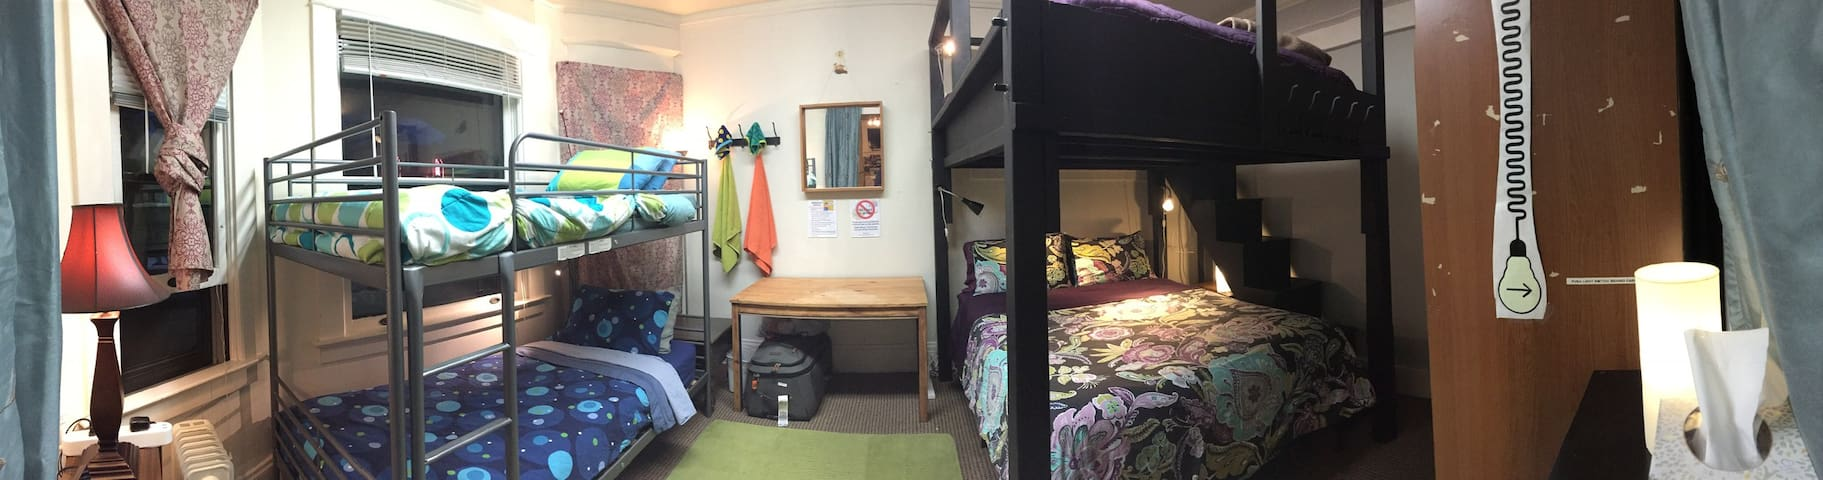 BUNKHOUSE (Bottom Queen Bed) Super Cntrl LOCATION!